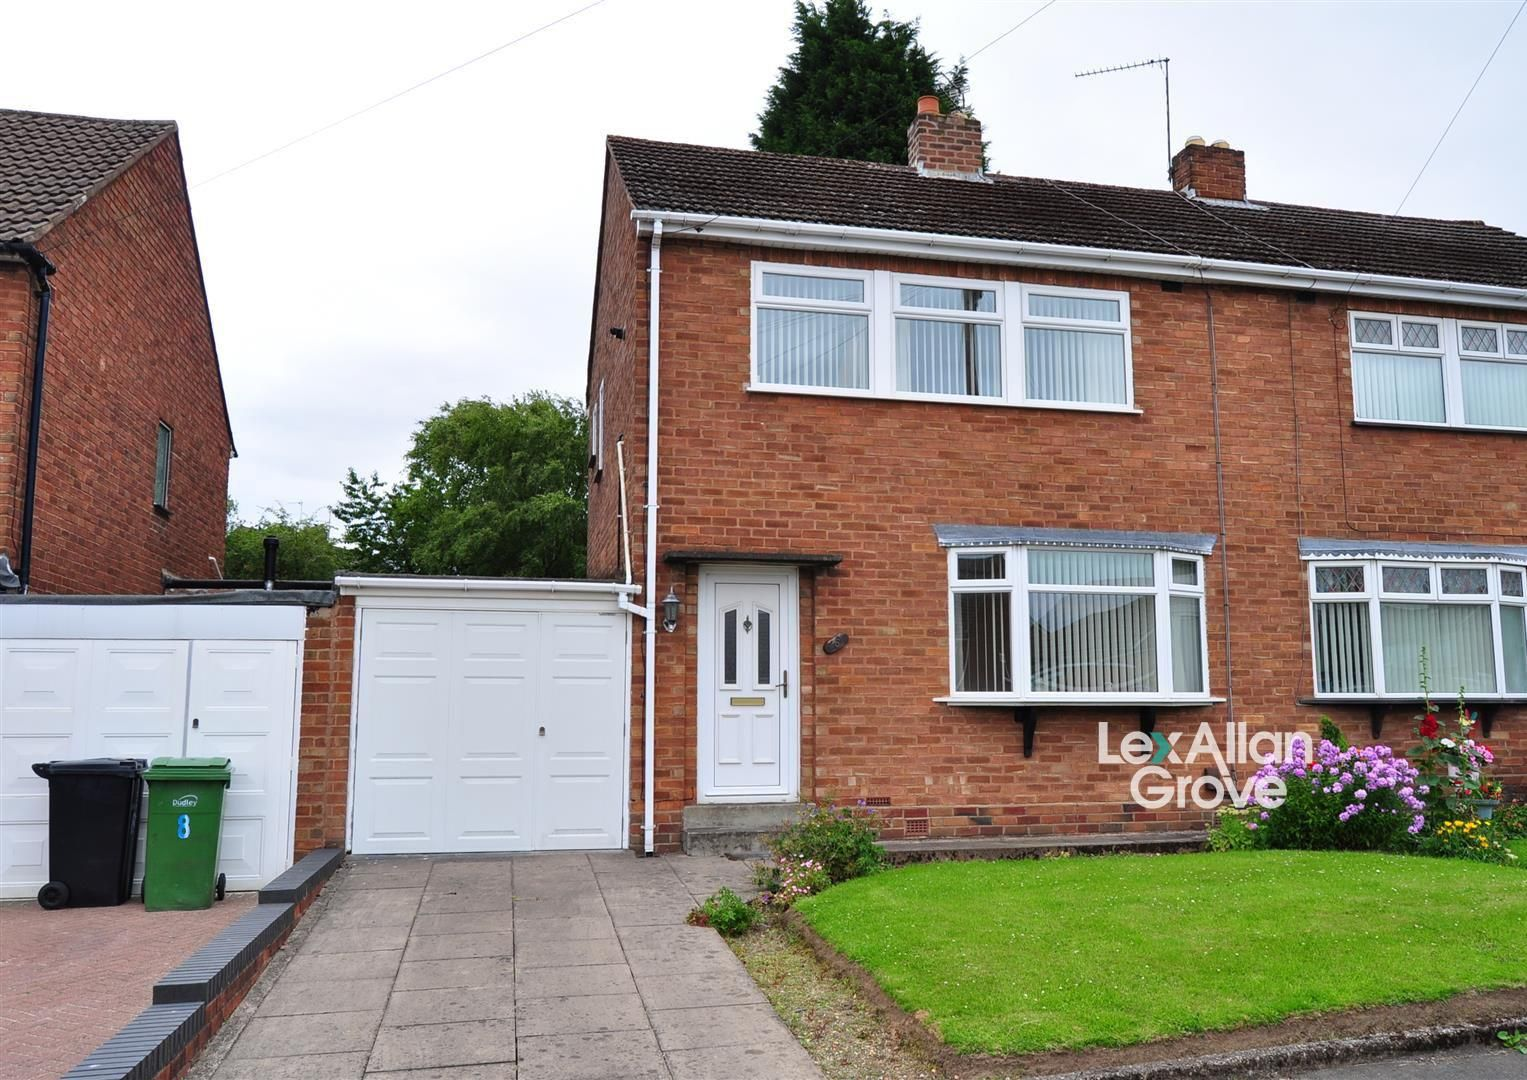 3 bed semi-detached for sale in Hurst Green, B62